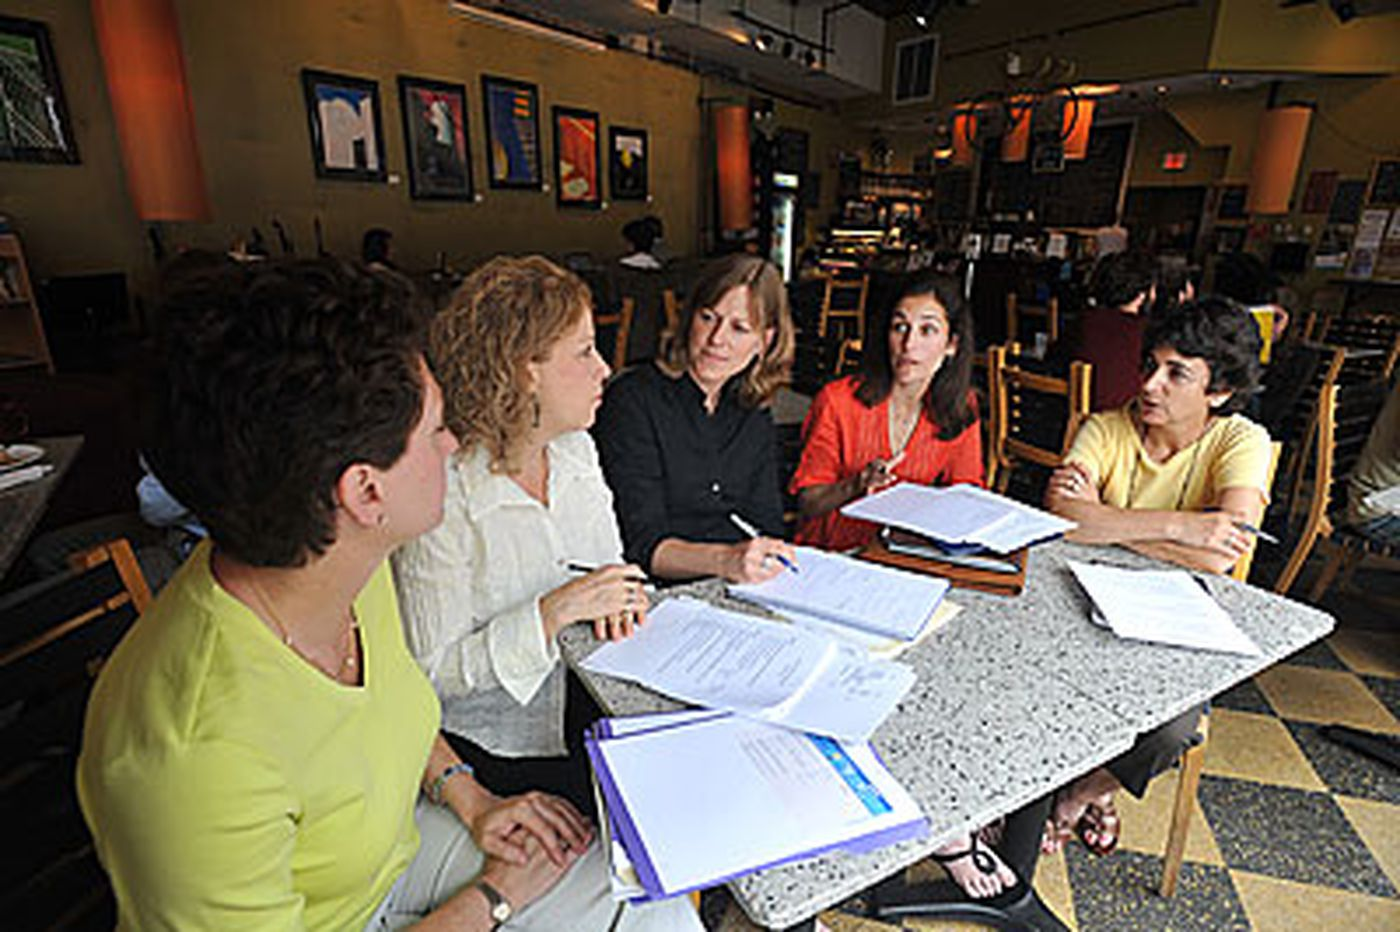 To have an impact, women pool funds